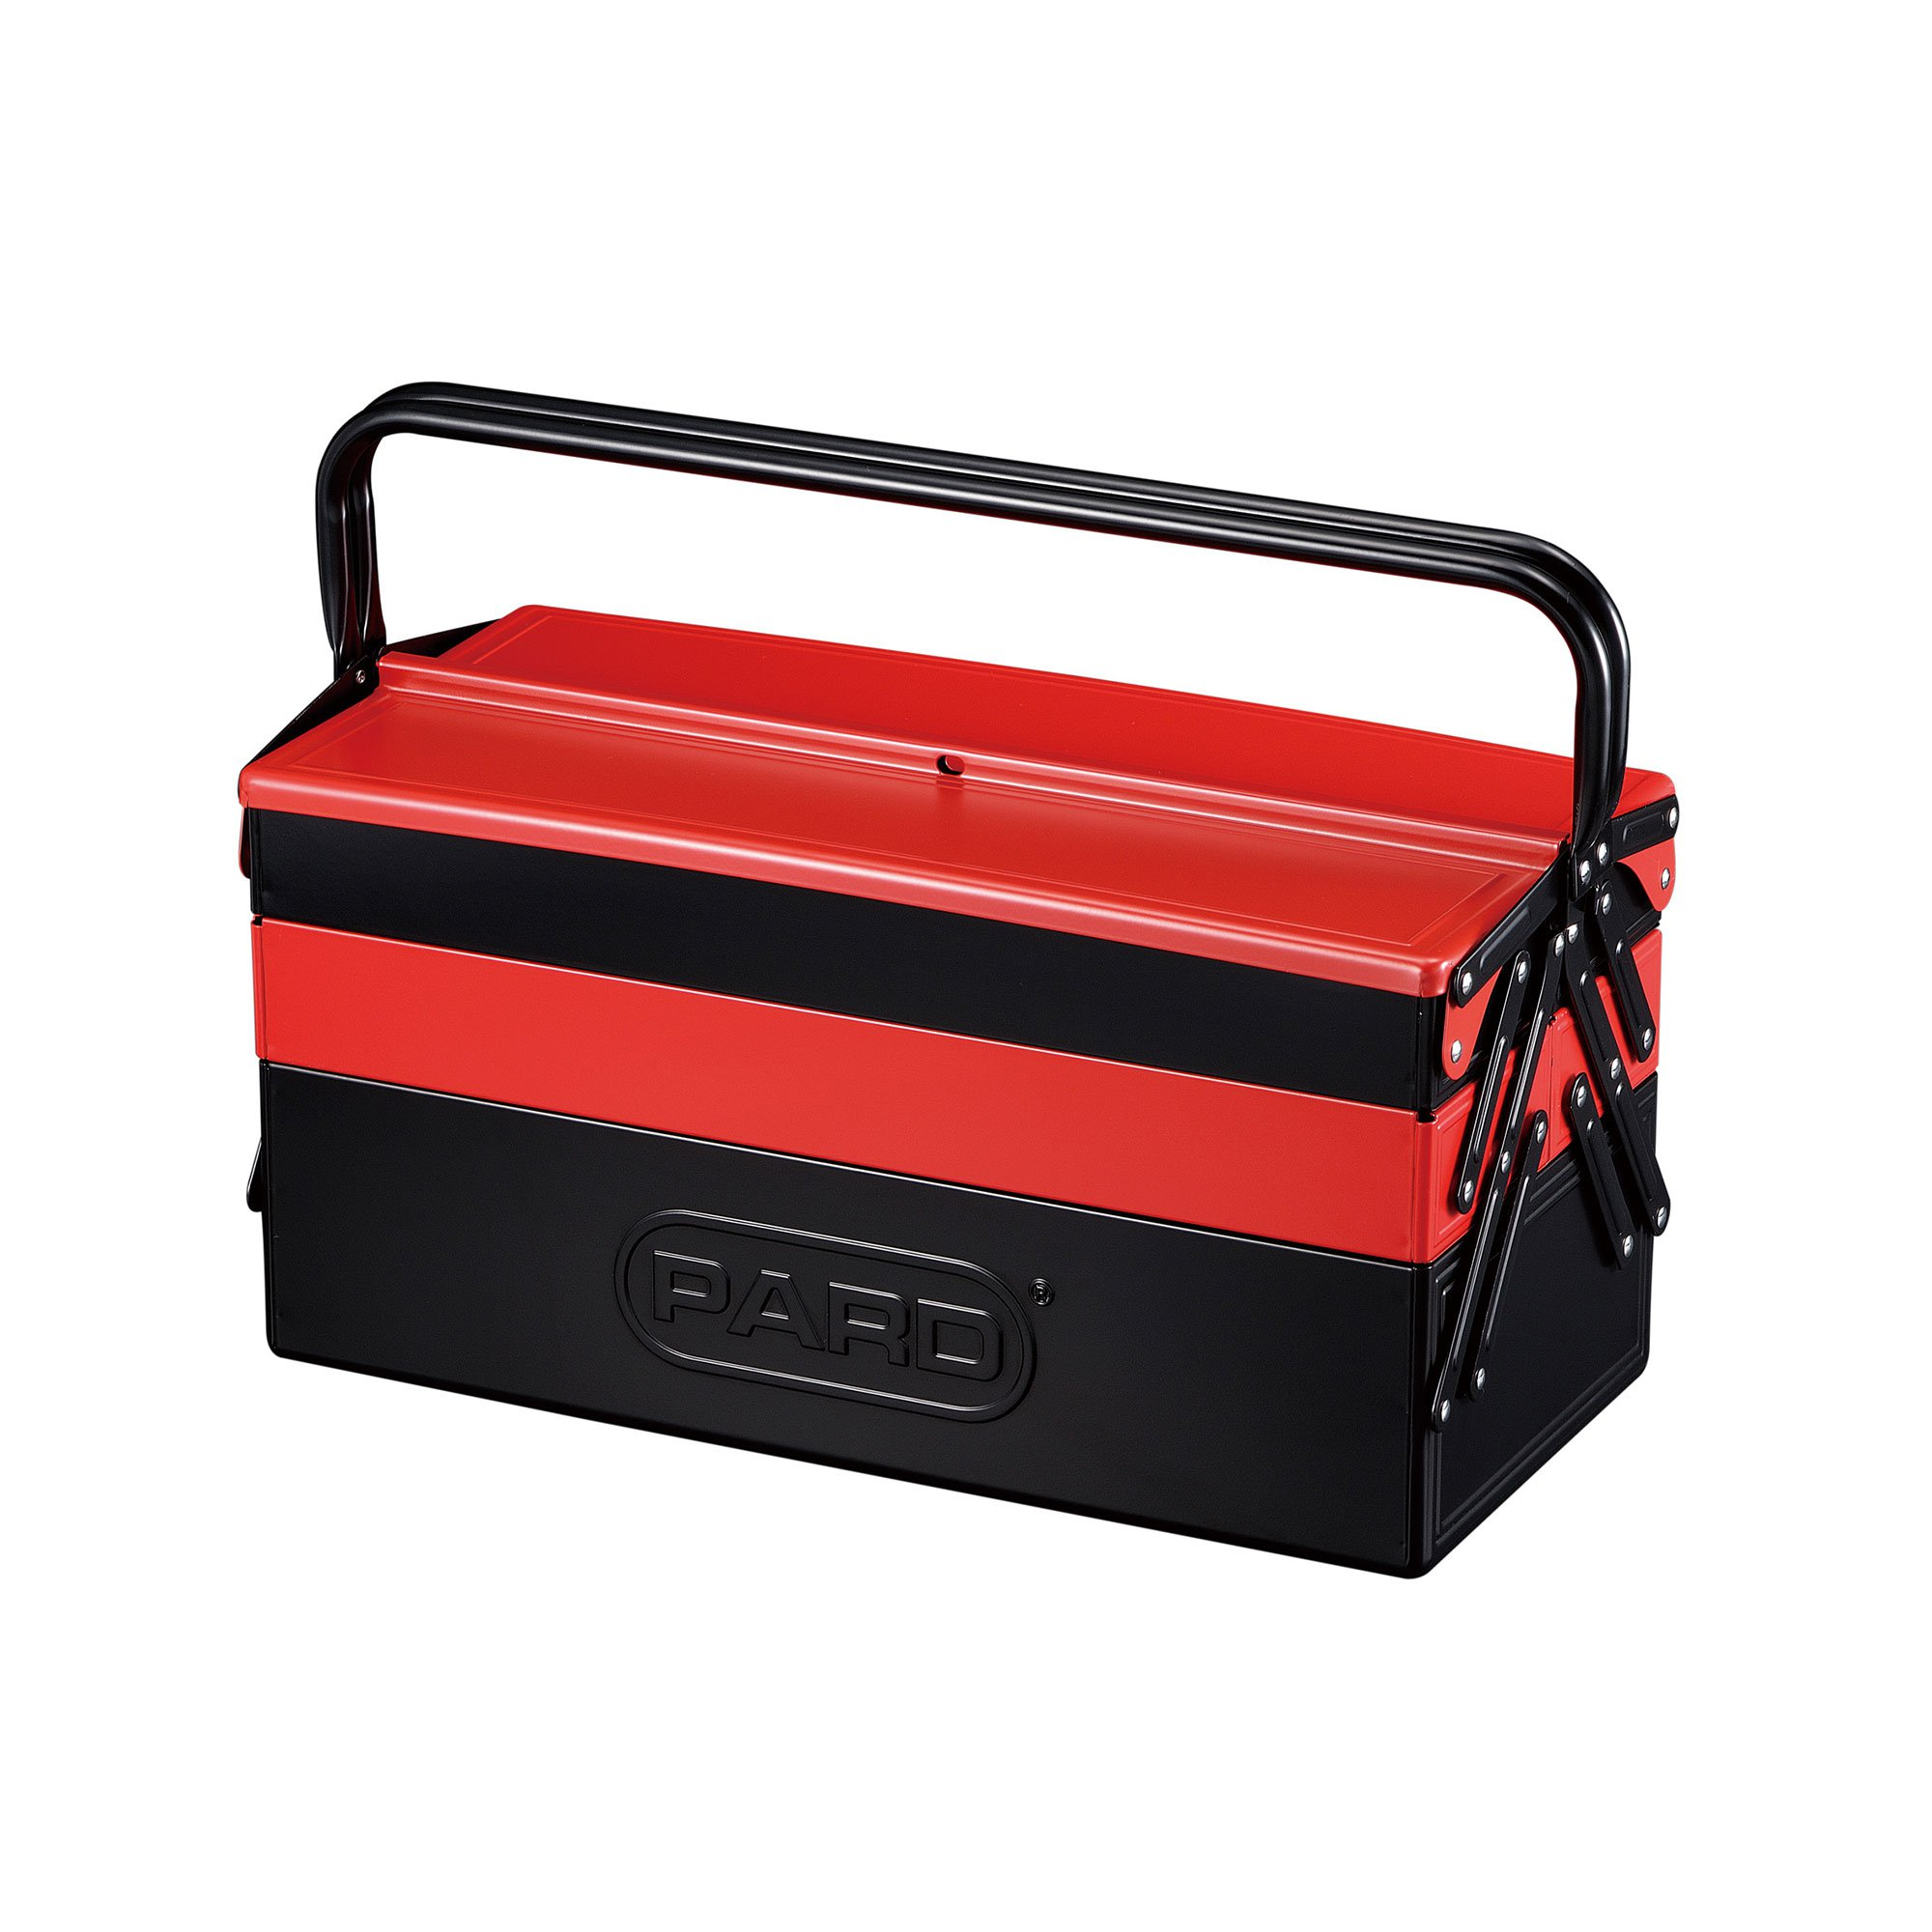 PARD 5 Tray Hand Carry Tool Box – Only 5.3kg